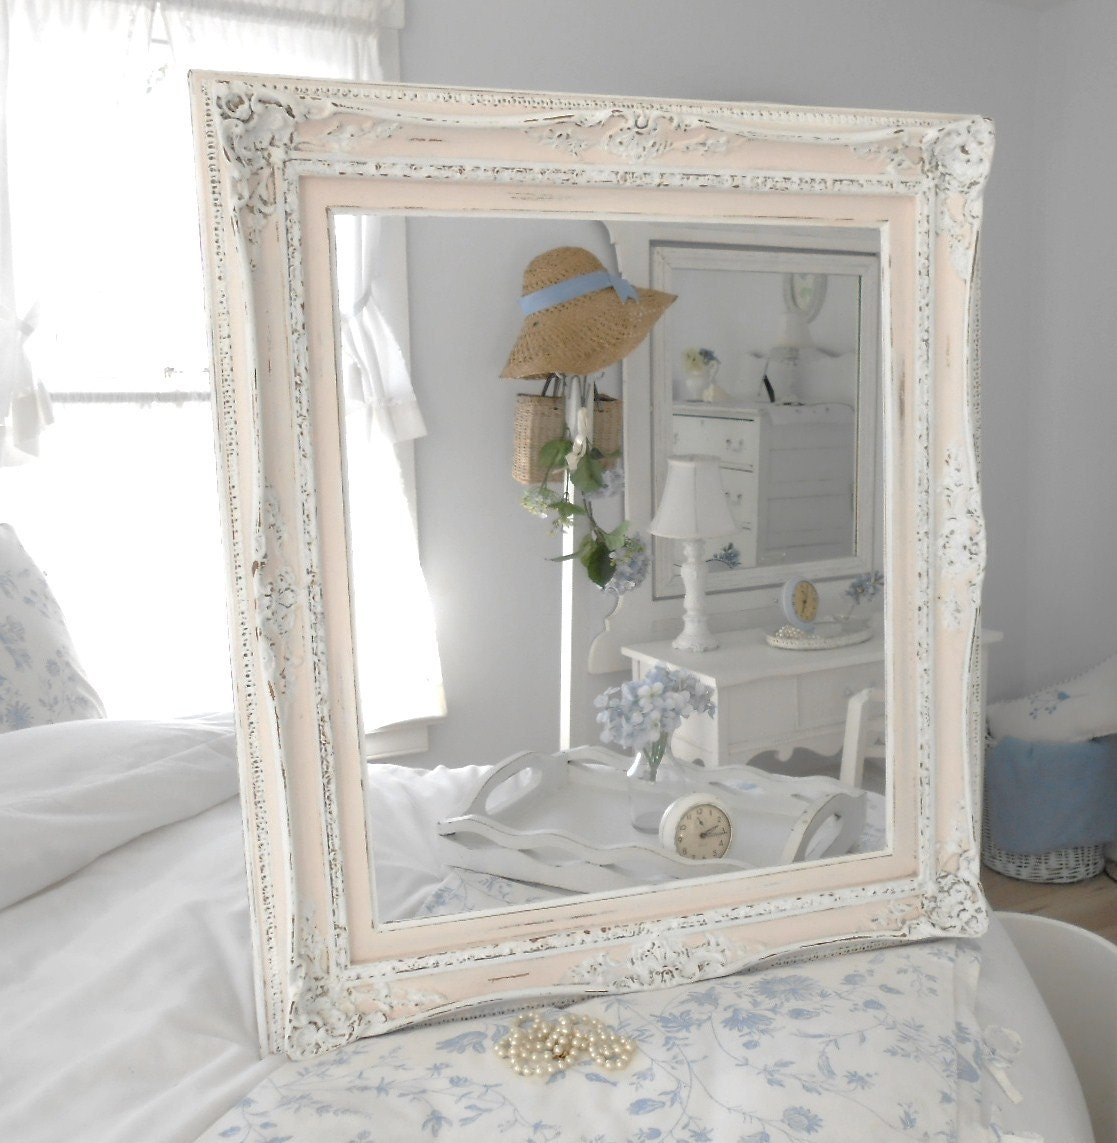 Frame shabby chic furniture home decor for mirror or art for Home decor furniture